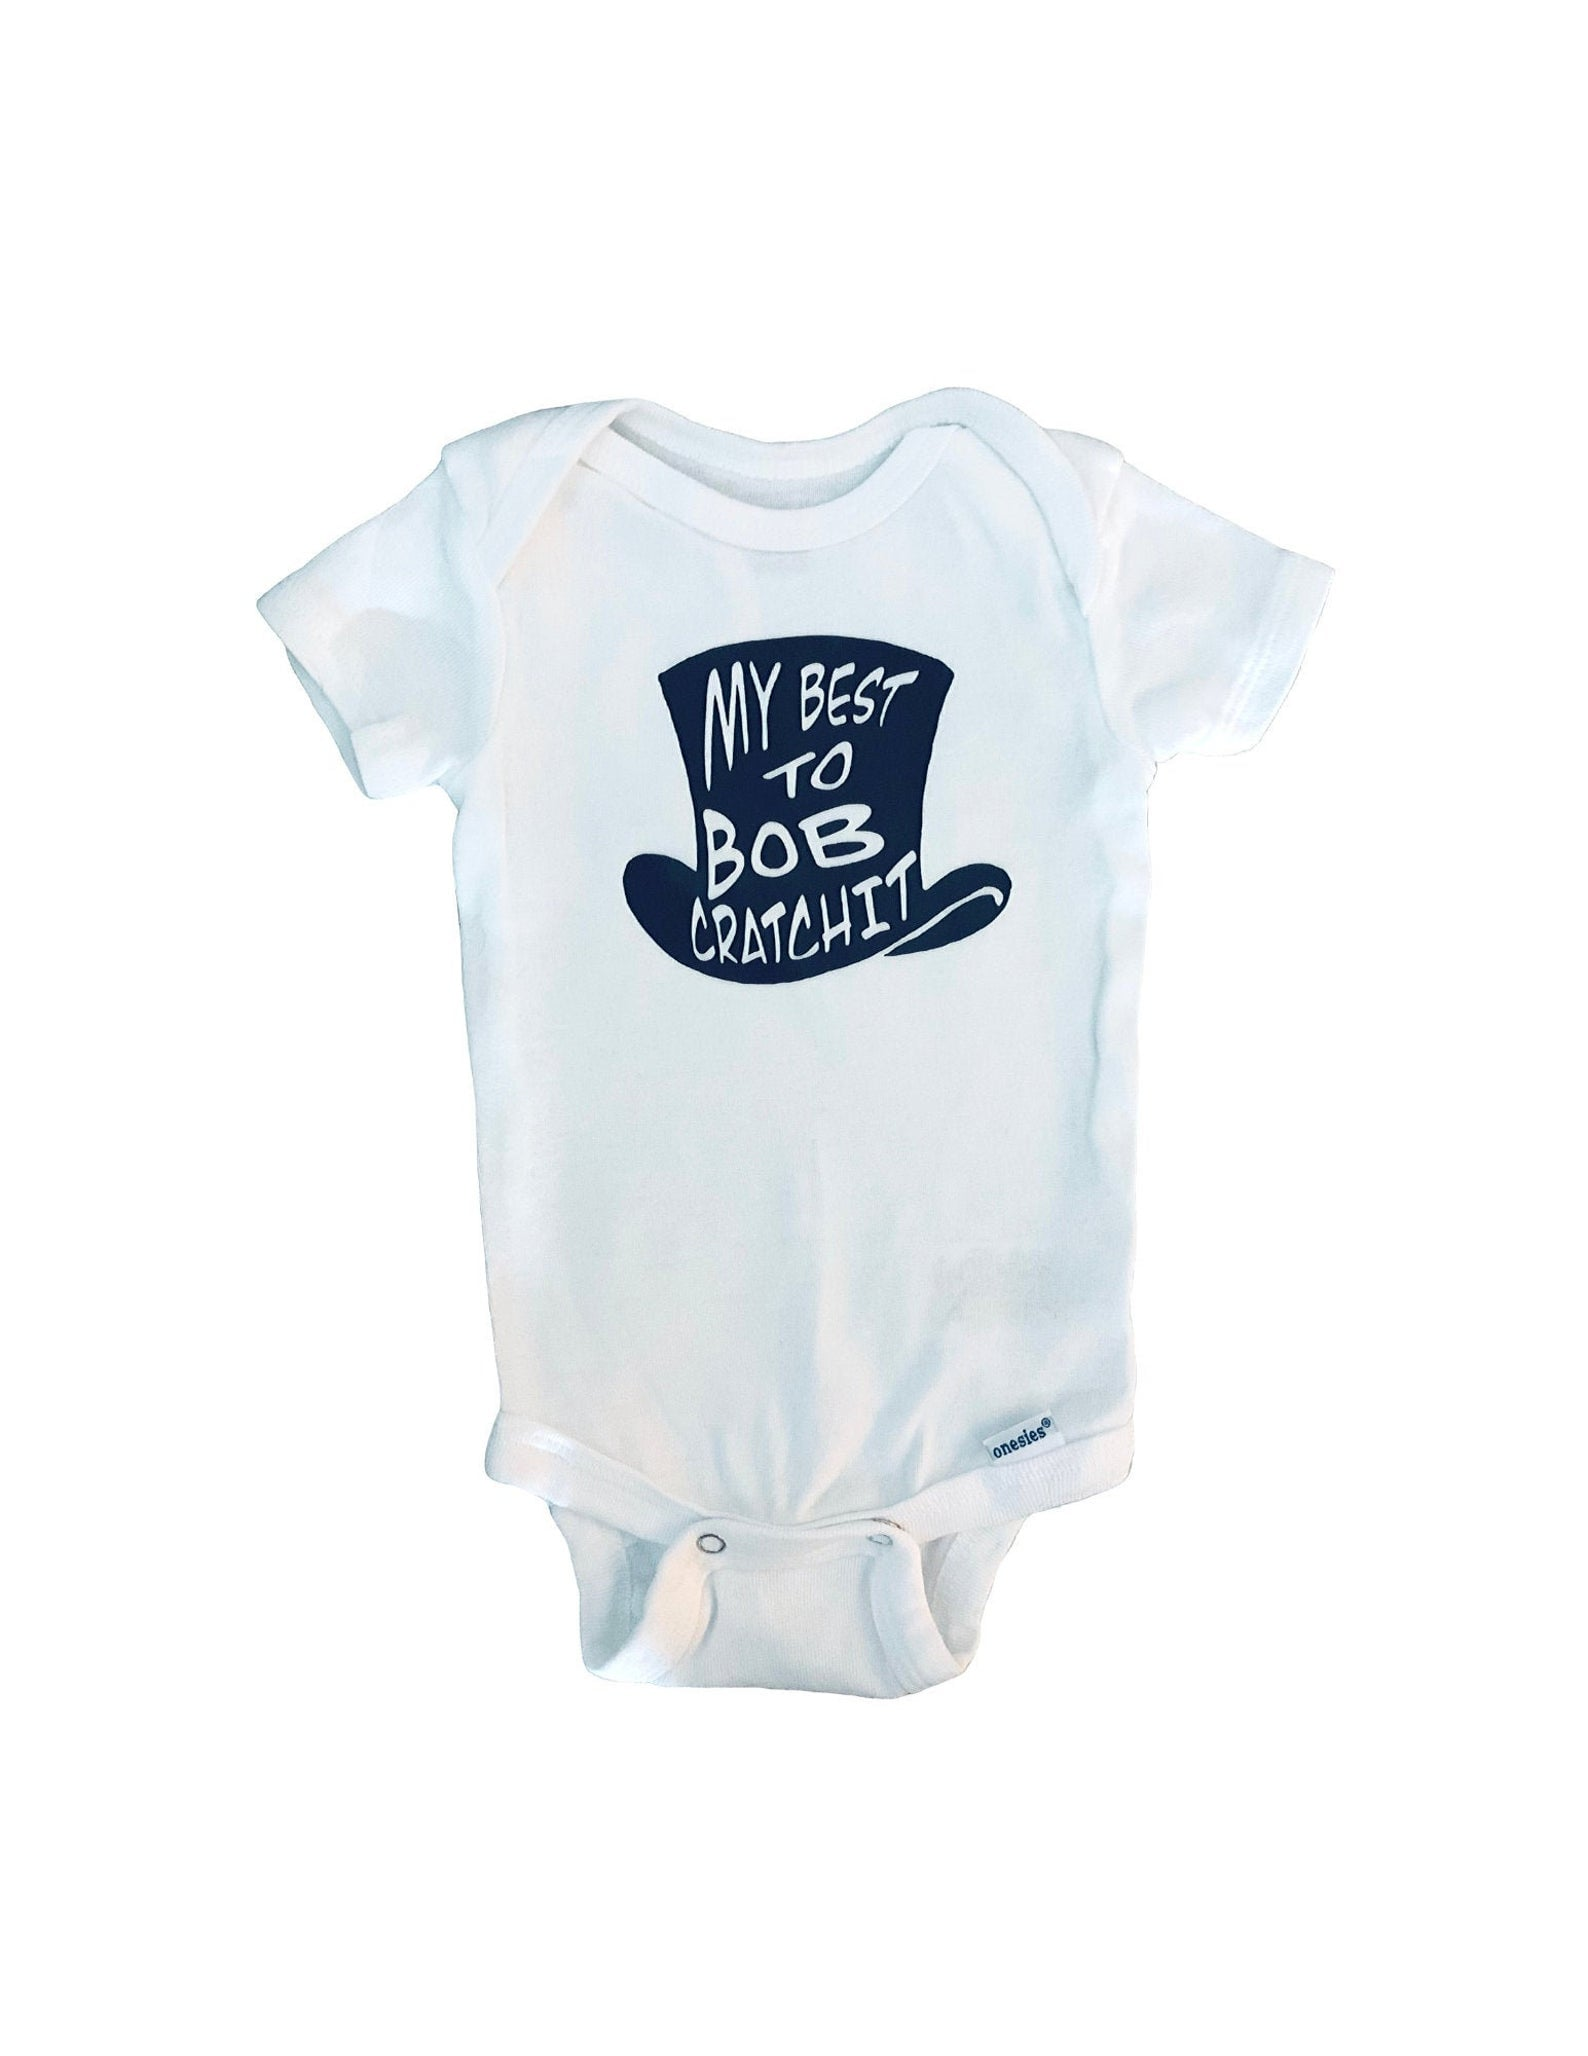 Cute Baby Clothes BOGO Love That Journey For Me